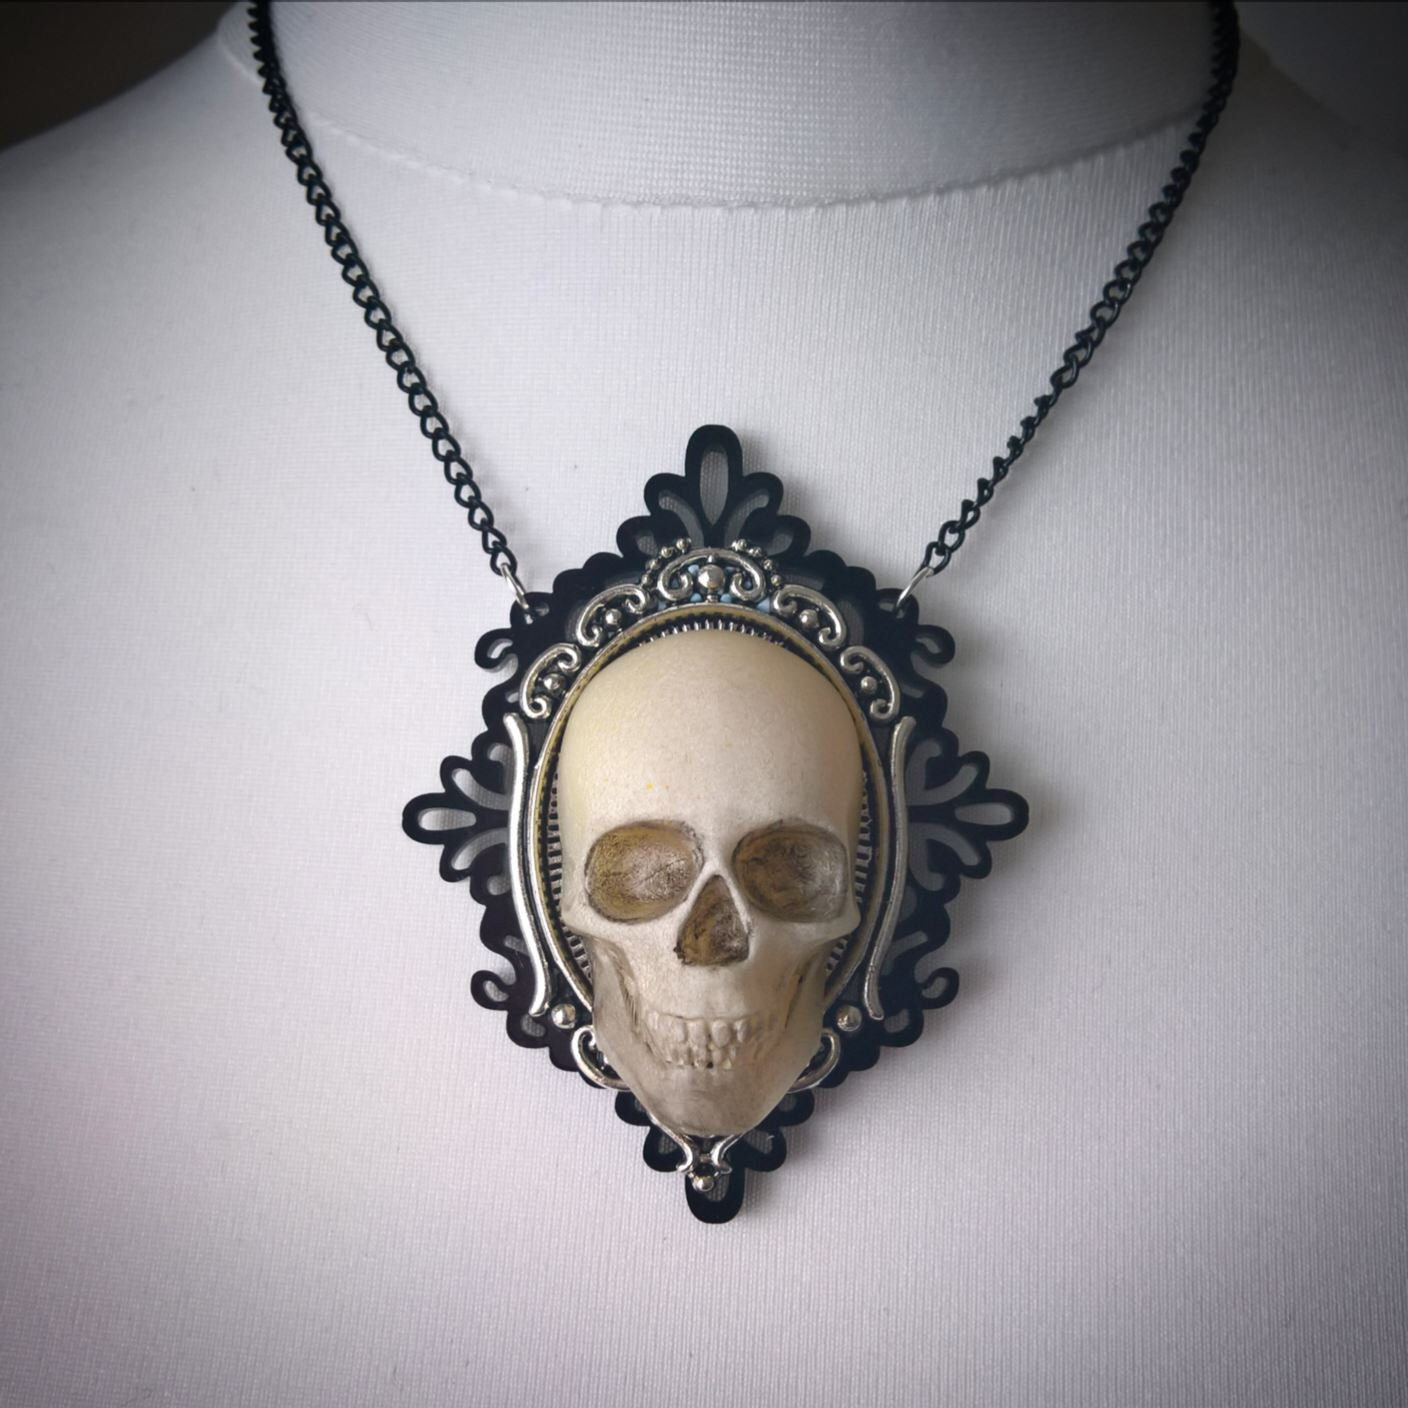 Punk Choker Necklace Silver Necklace Punk One-Of-A-Kind Skull Necklace For Her Punk Jewelry Skull Jewelry Glass Pearl /& Chain Necklace